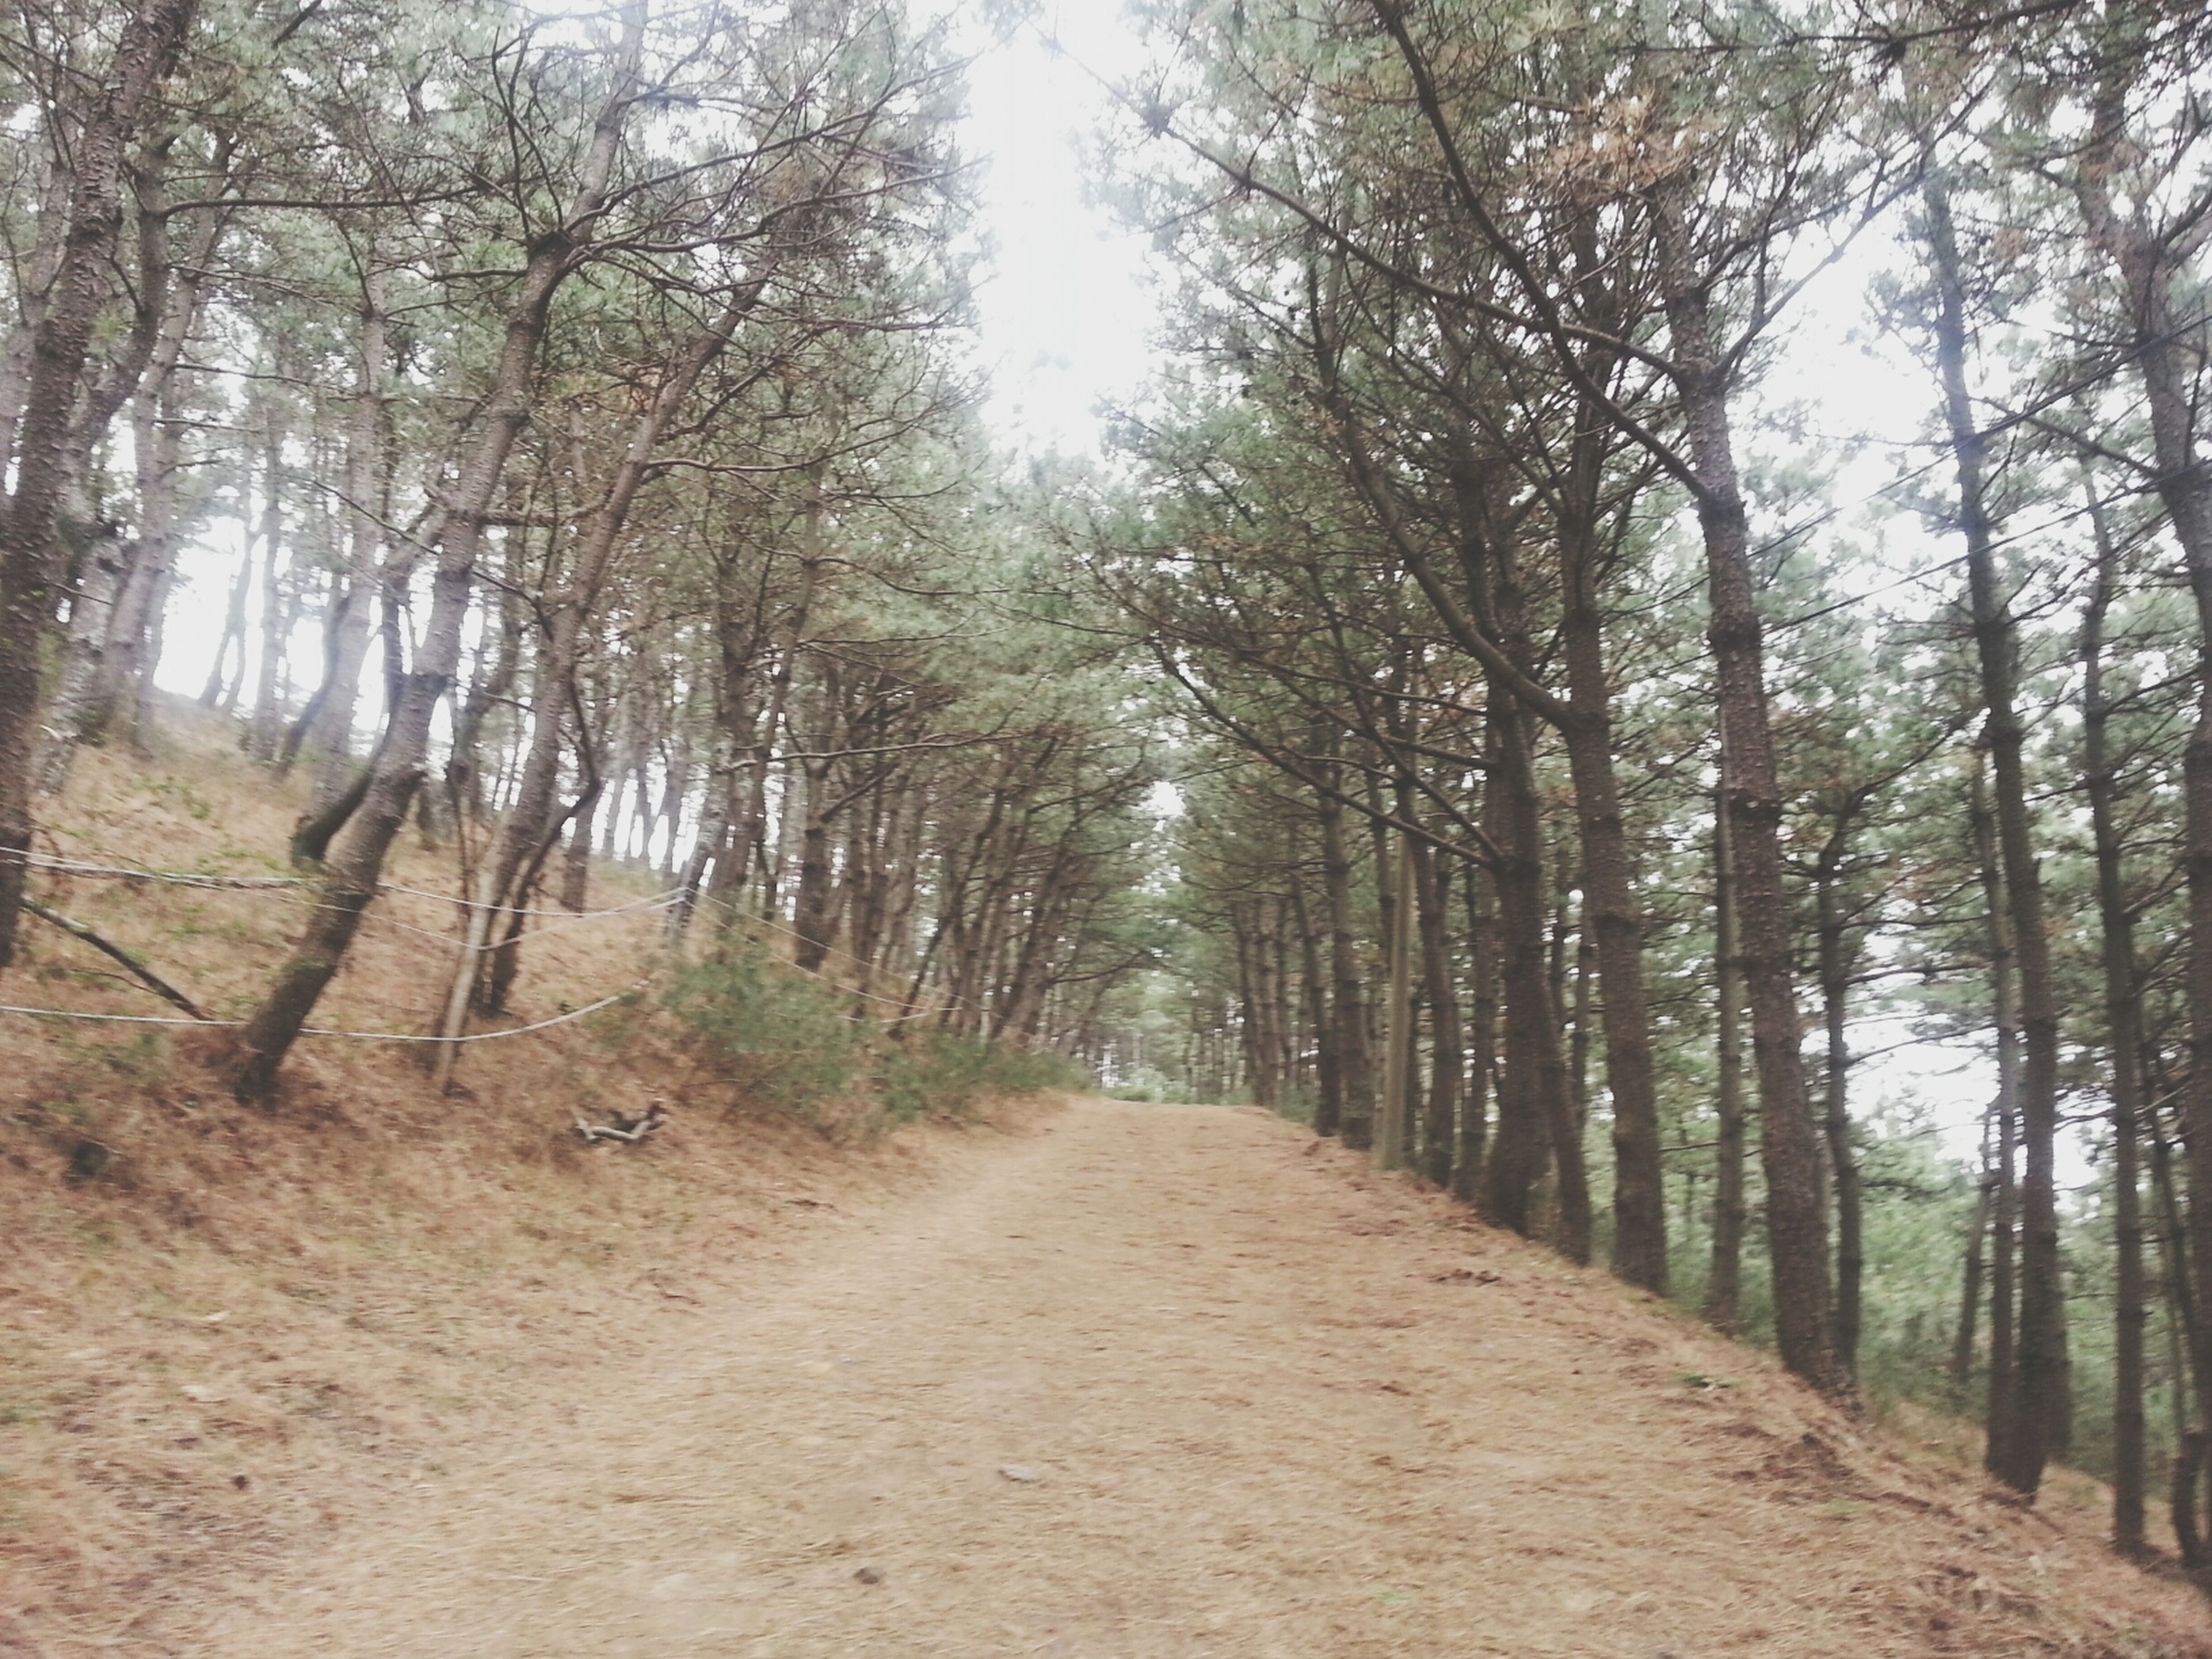 tree, the way forward, diminishing perspective, tranquility, forest, vanishing point, tranquil scene, dirt road, nature, tree trunk, woodland, growth, beauty in nature, landscape, scenics, transportation, sunlight, treelined, road, branch